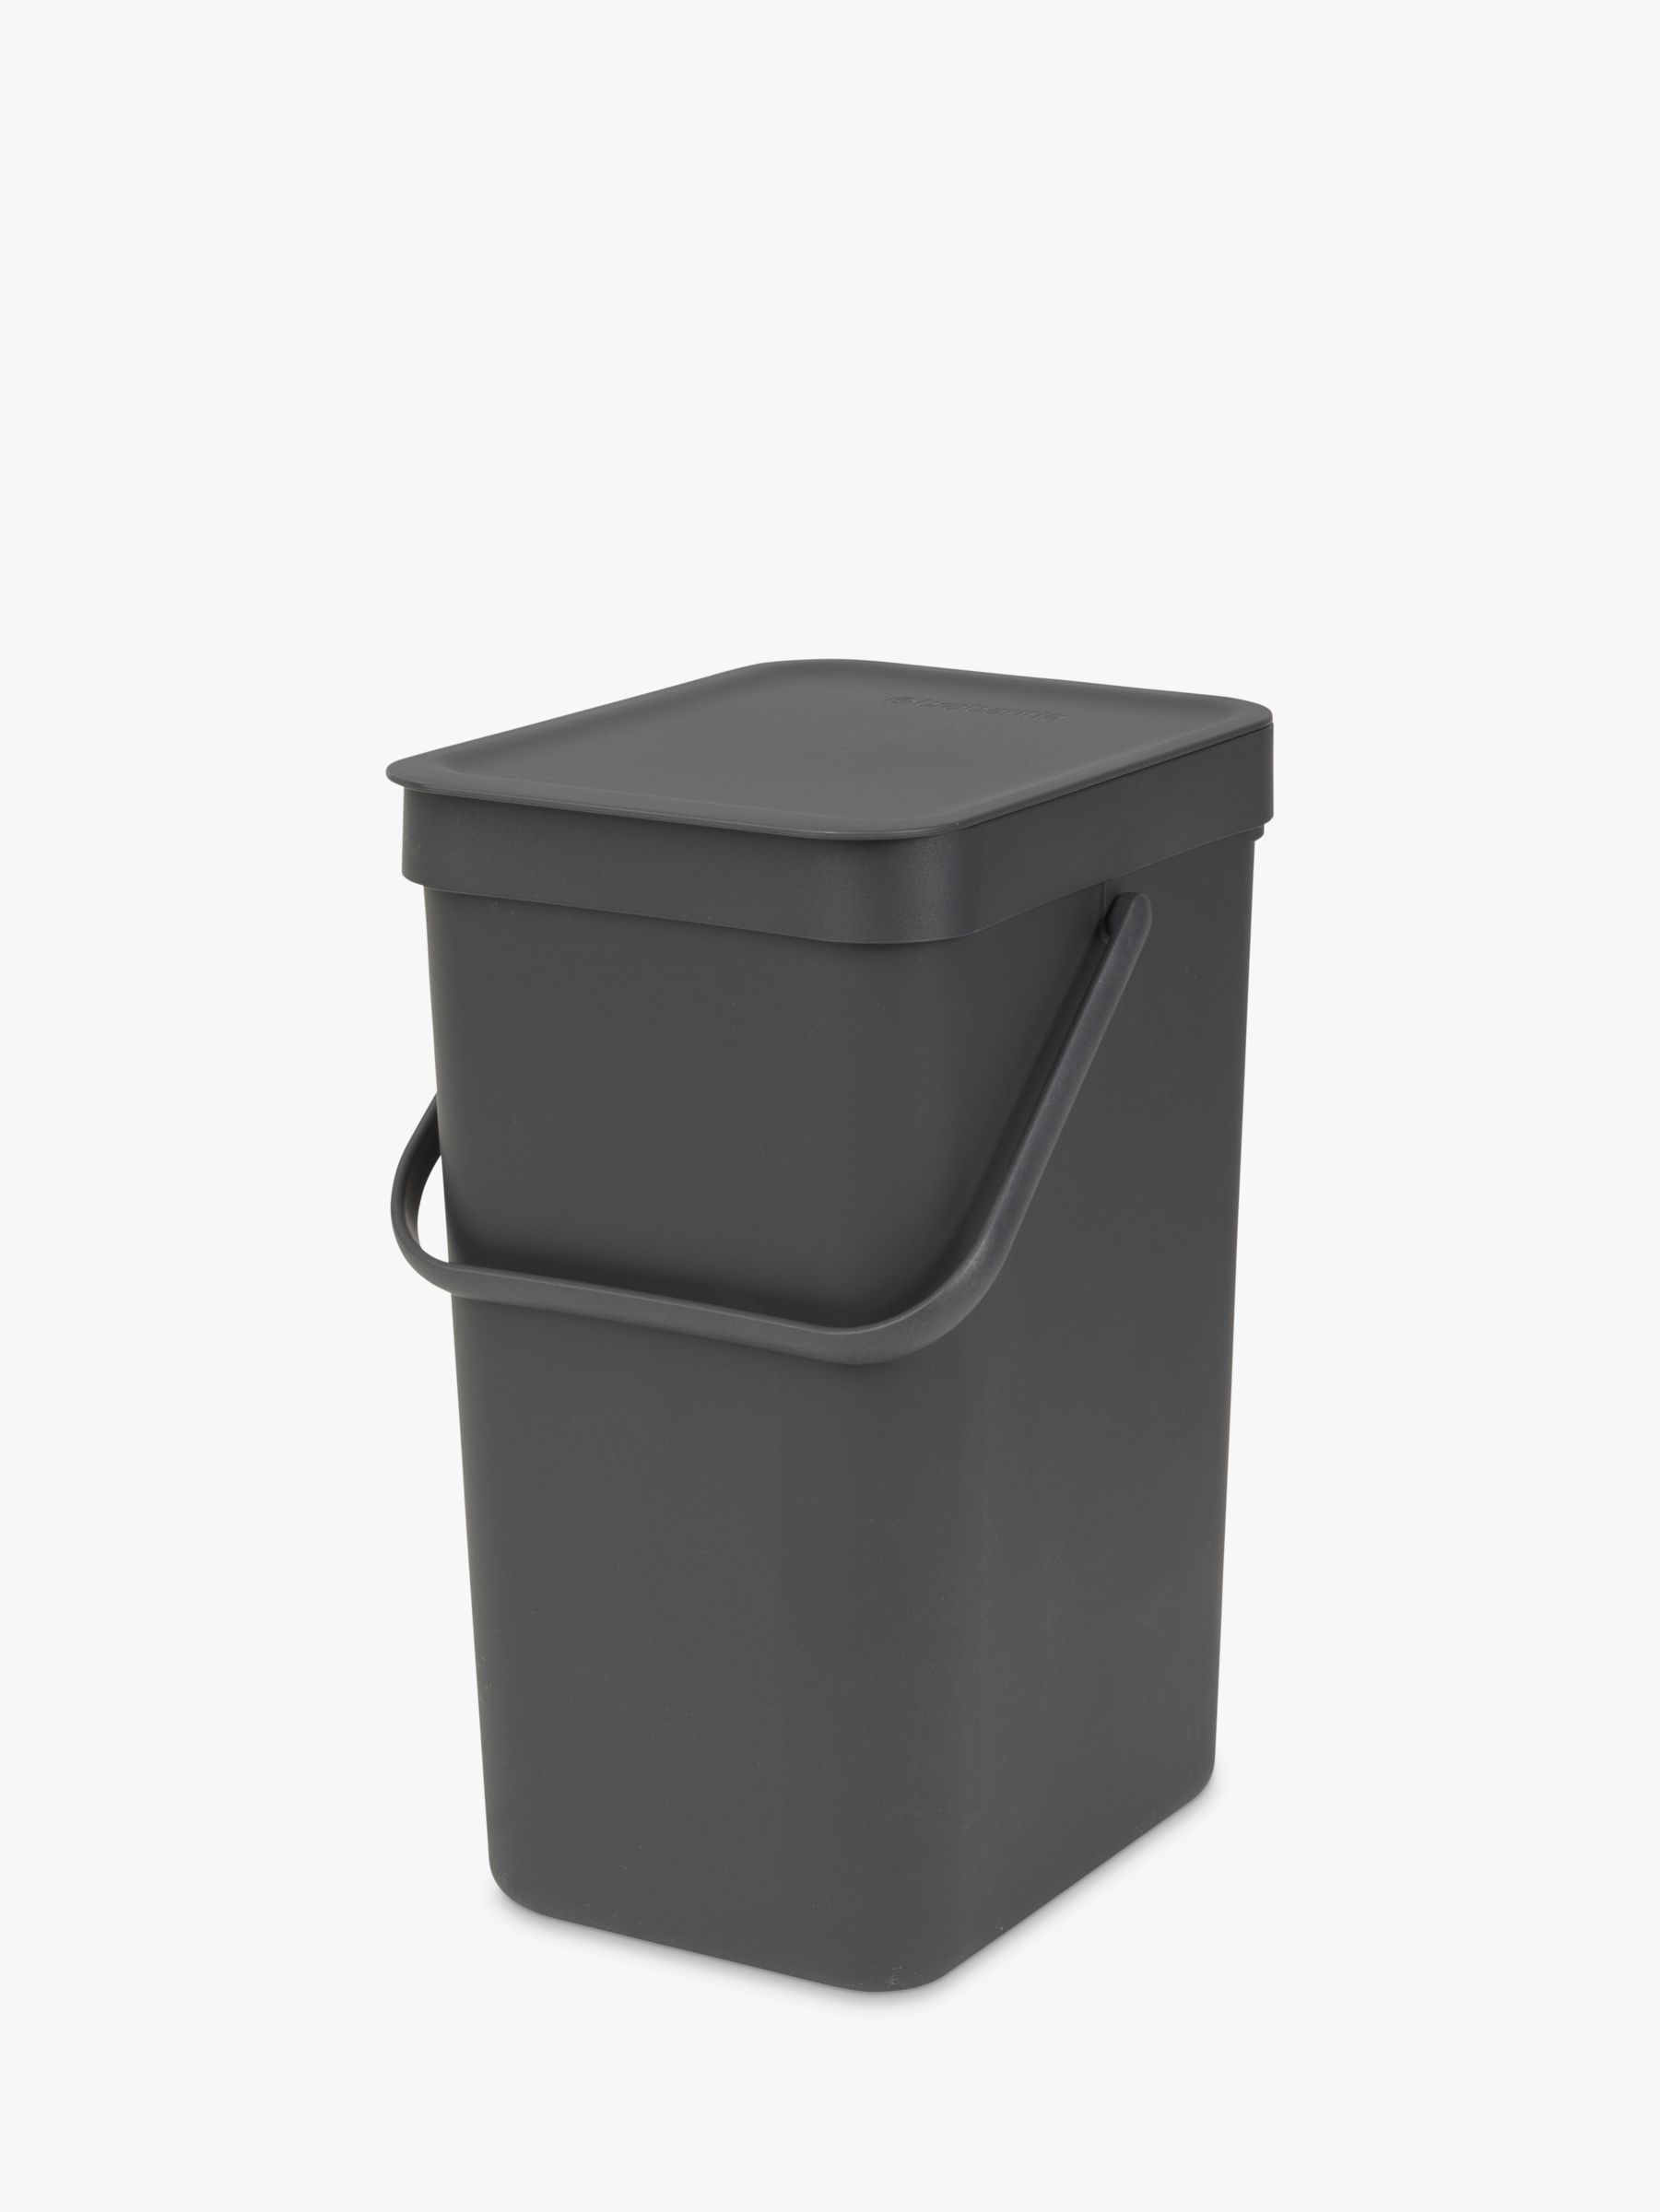 Brabantia Brabantia Sort & Go Built-In Bin, Grey, 12L